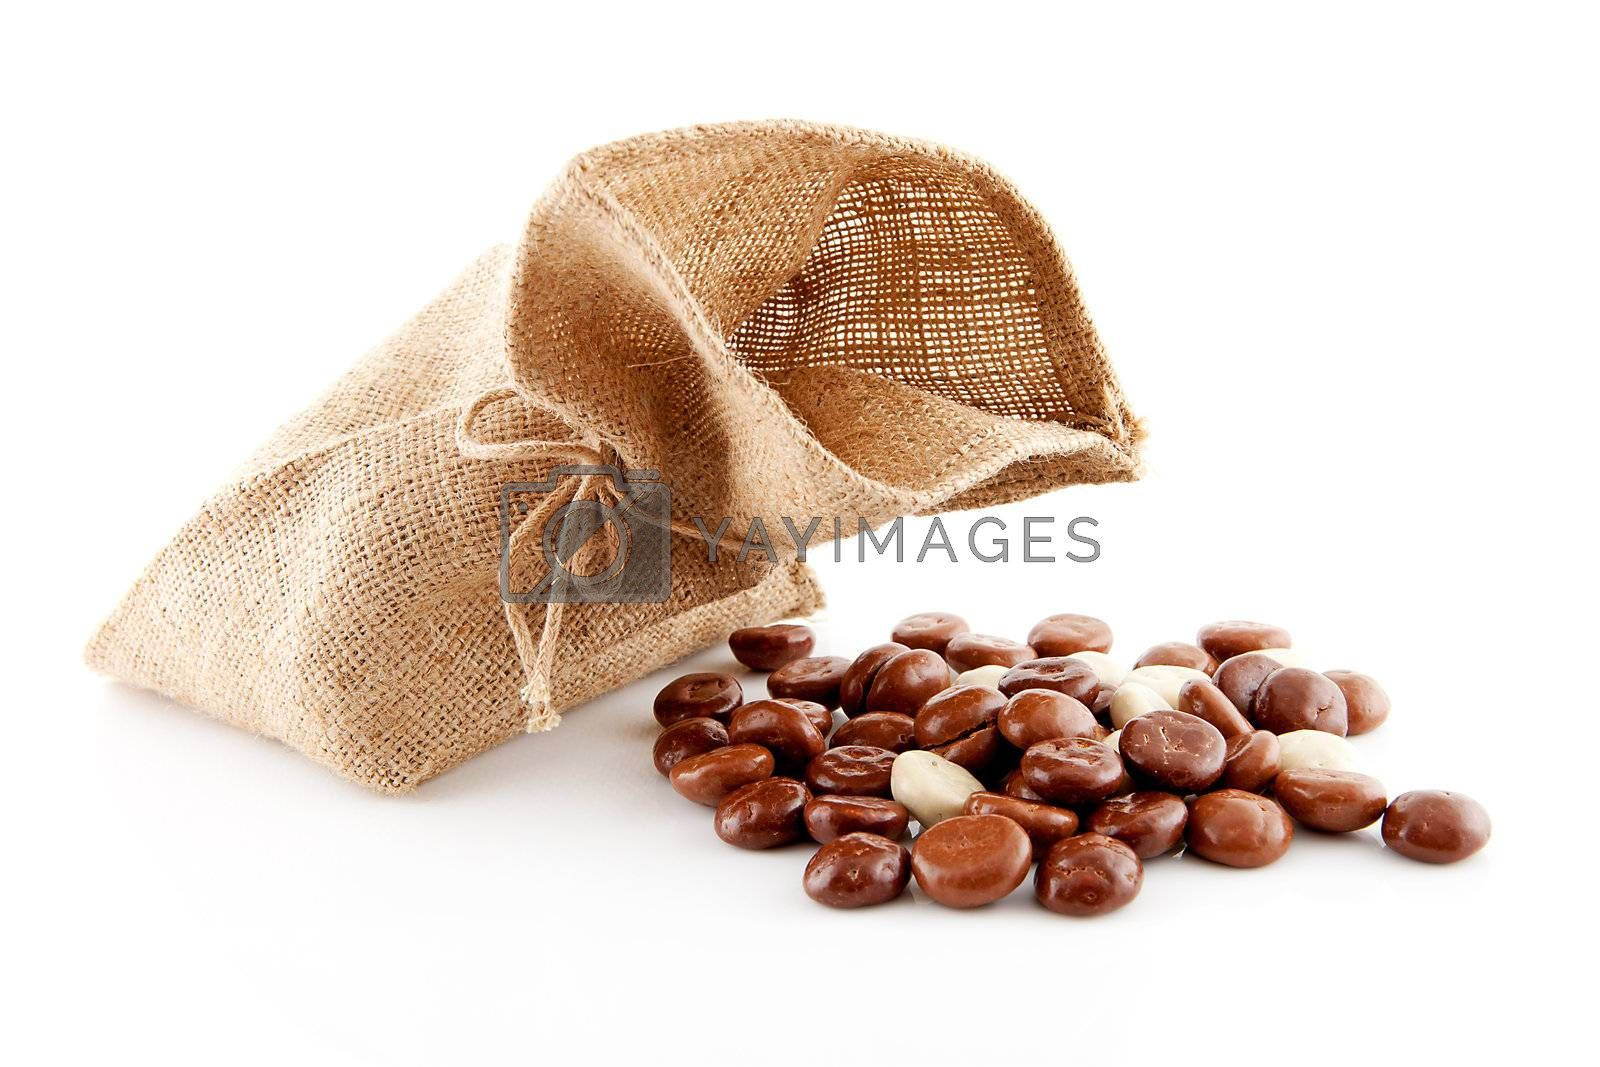 Typical Dutch celebration: Sinterklaas with bag and chocolate ginger nuts, ready for the kids in december. Isolated on white background